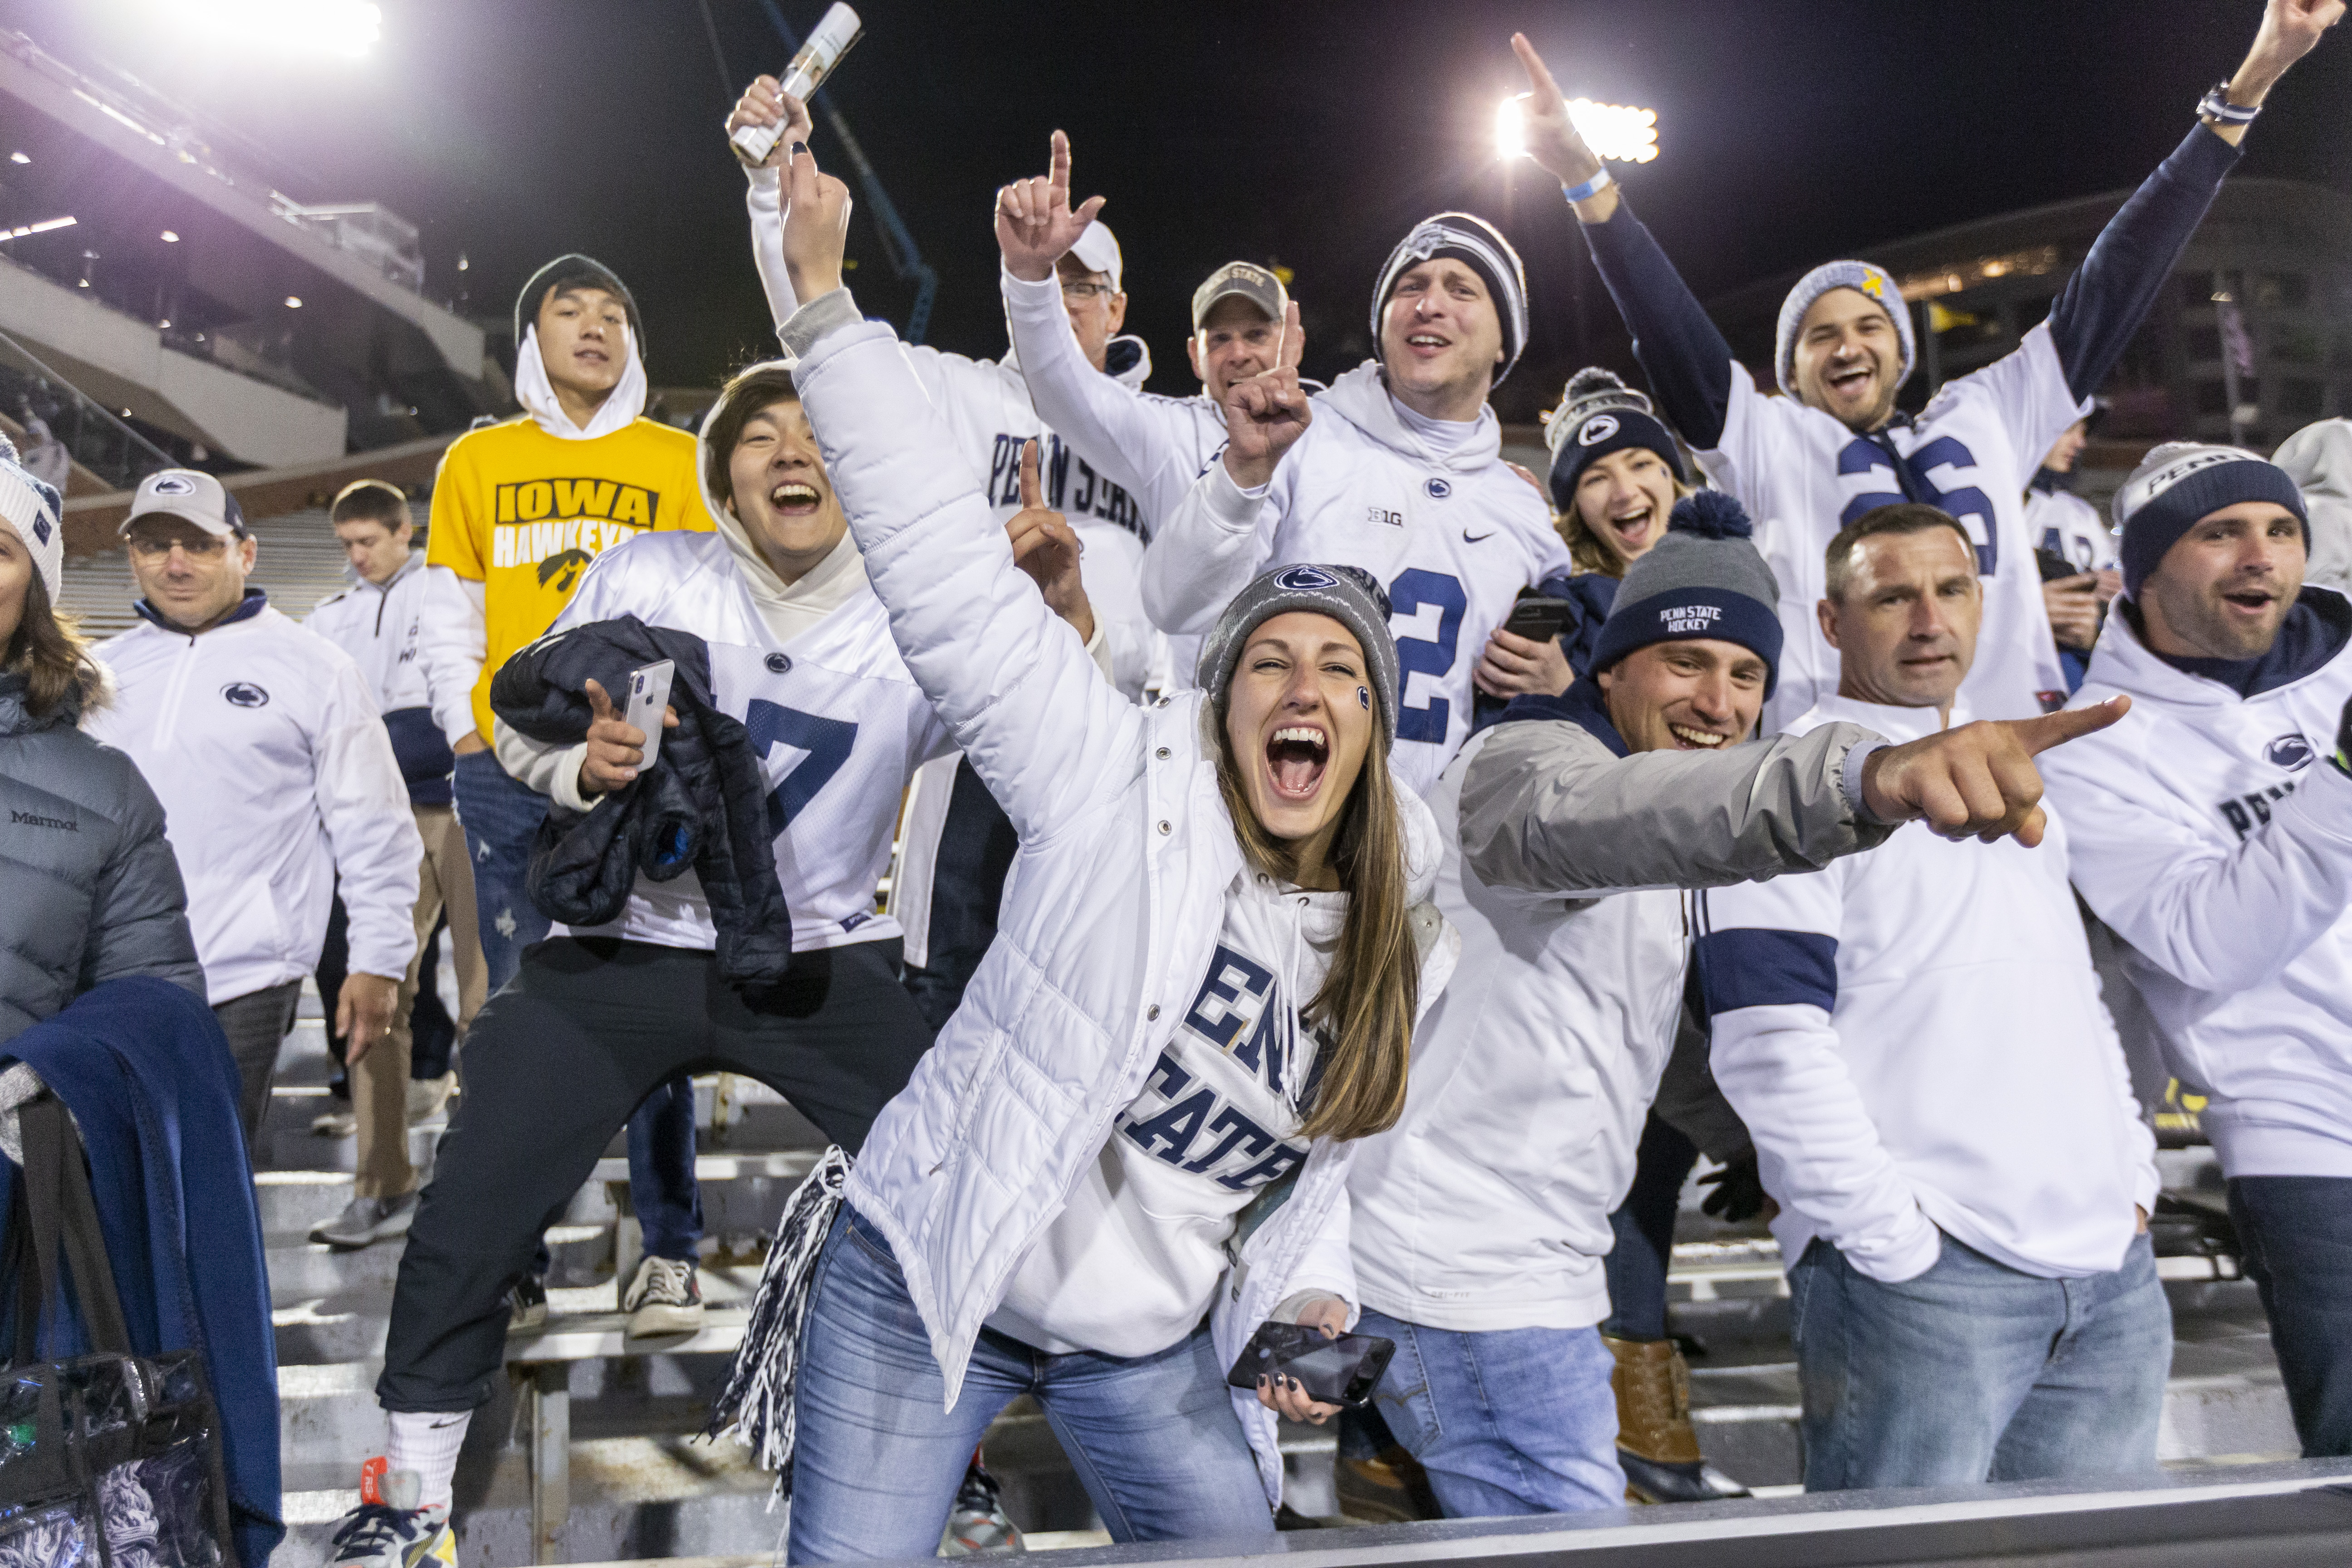 Penn State faces in the crowd from Iowa